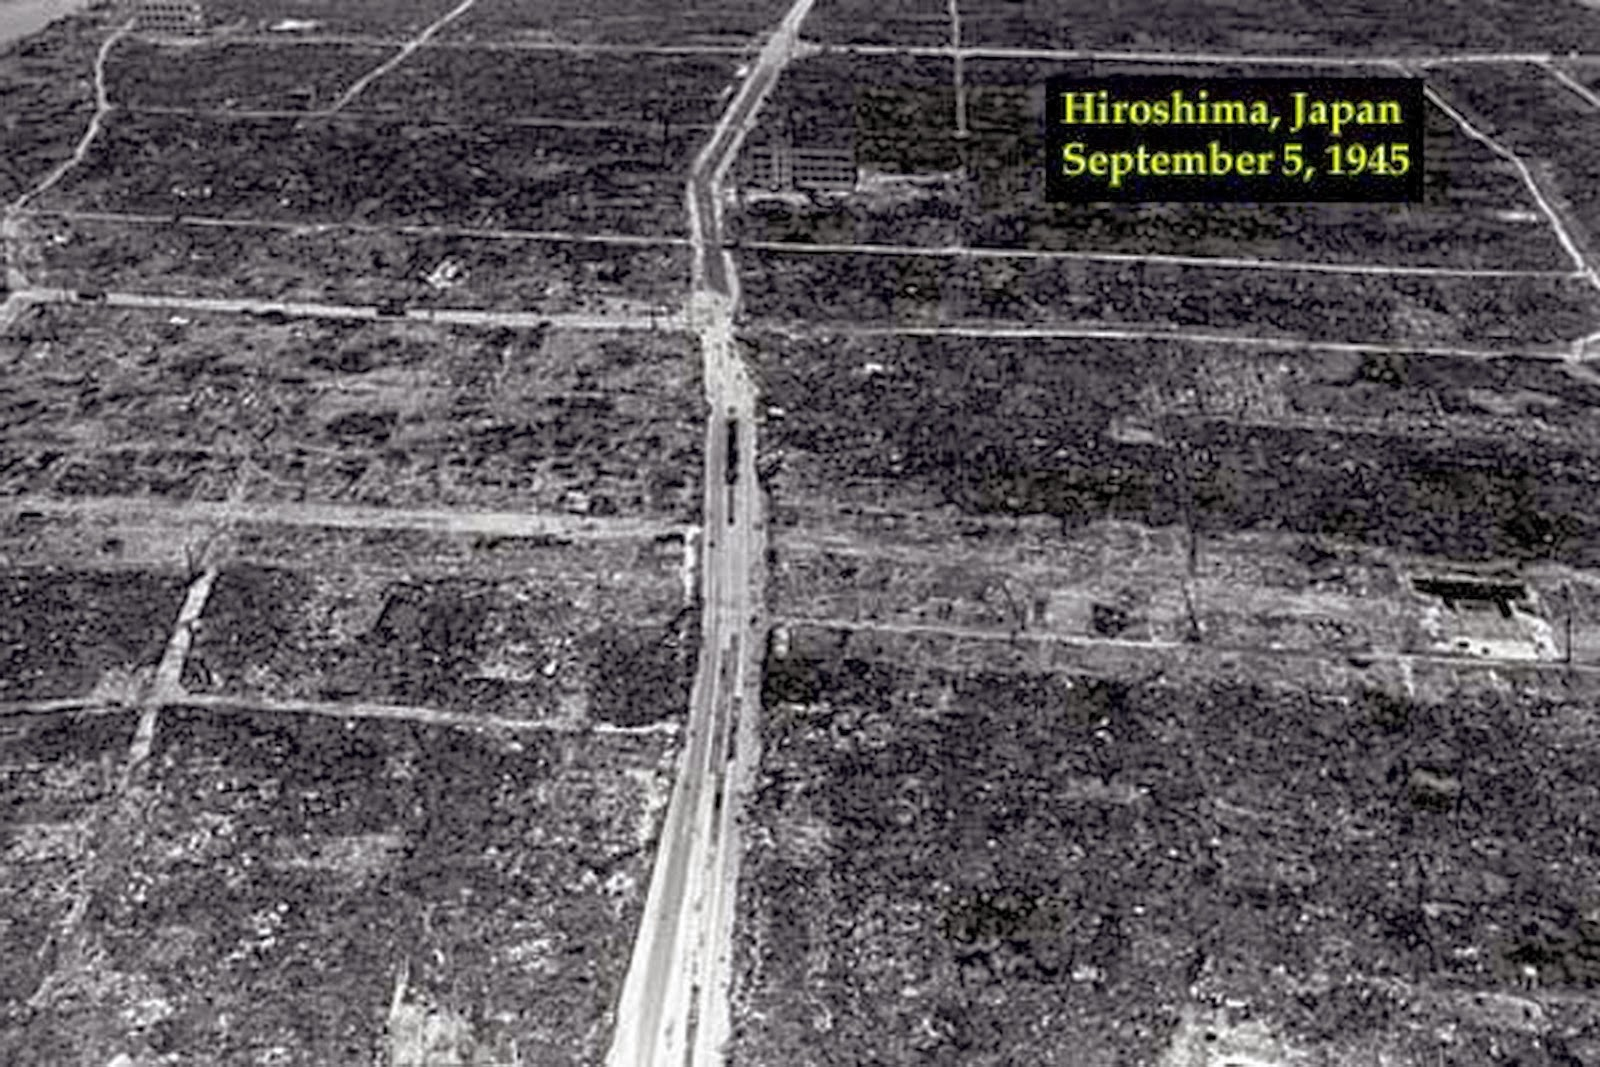 atomic bomb on hiroshima Hiroshima: the first city destroyed by a nuclear weapon on august 6, 1945, the japanese city of hiroshima was destroyed by a nuclear weapon, an atomic bomb.